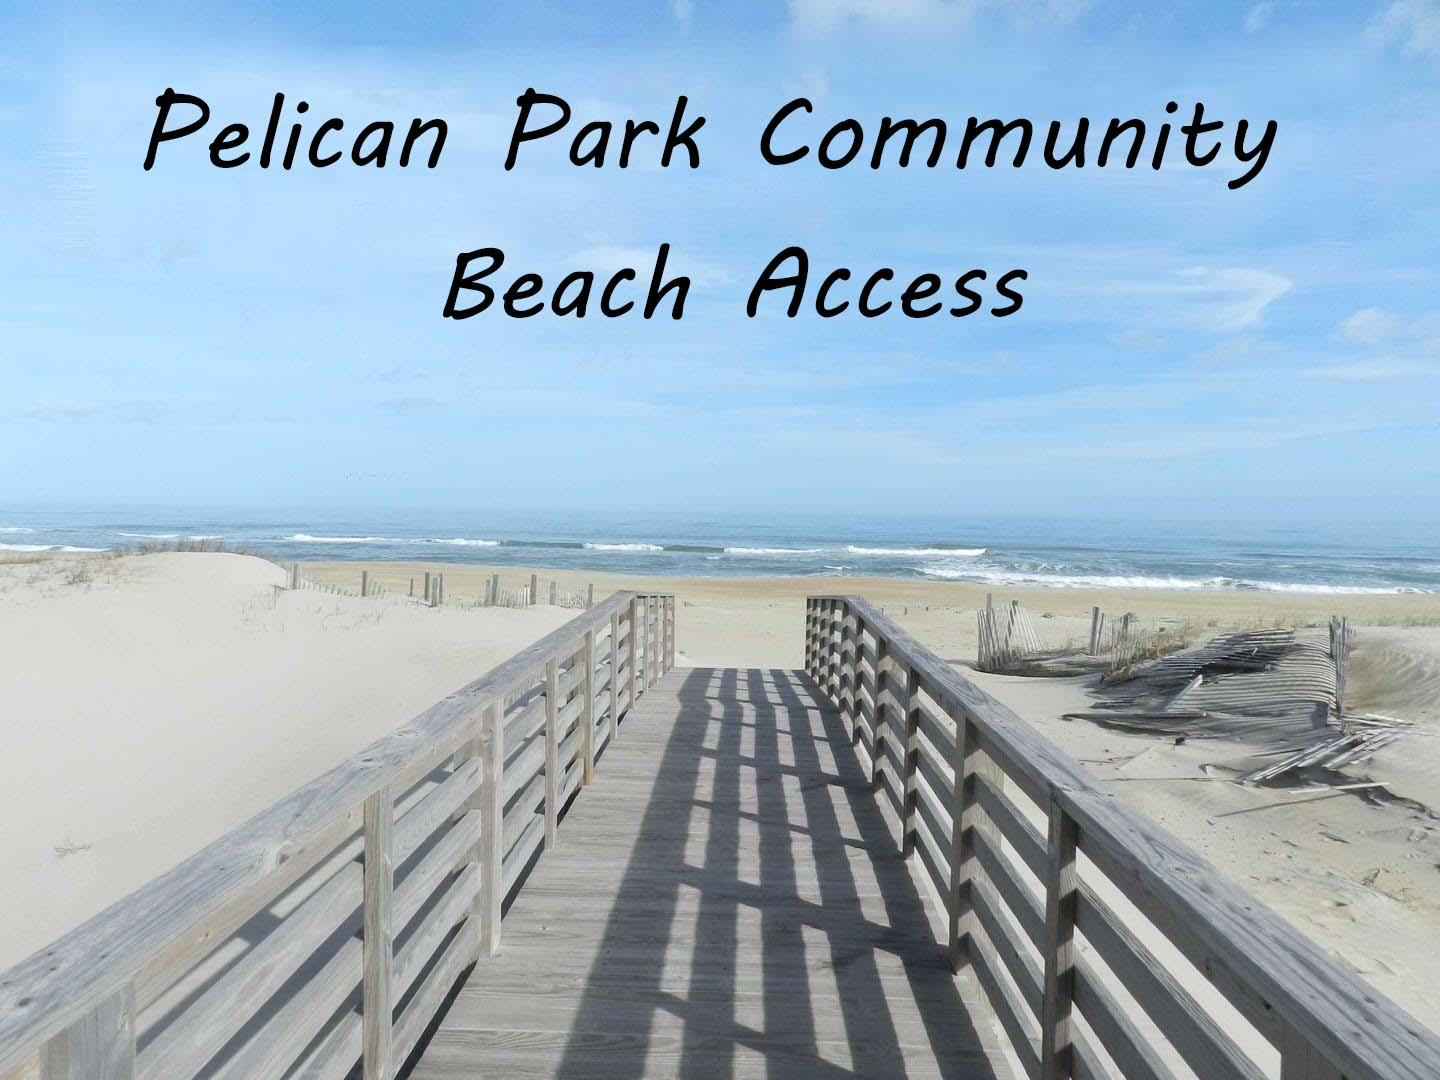 Pelican Park Community Beach Access